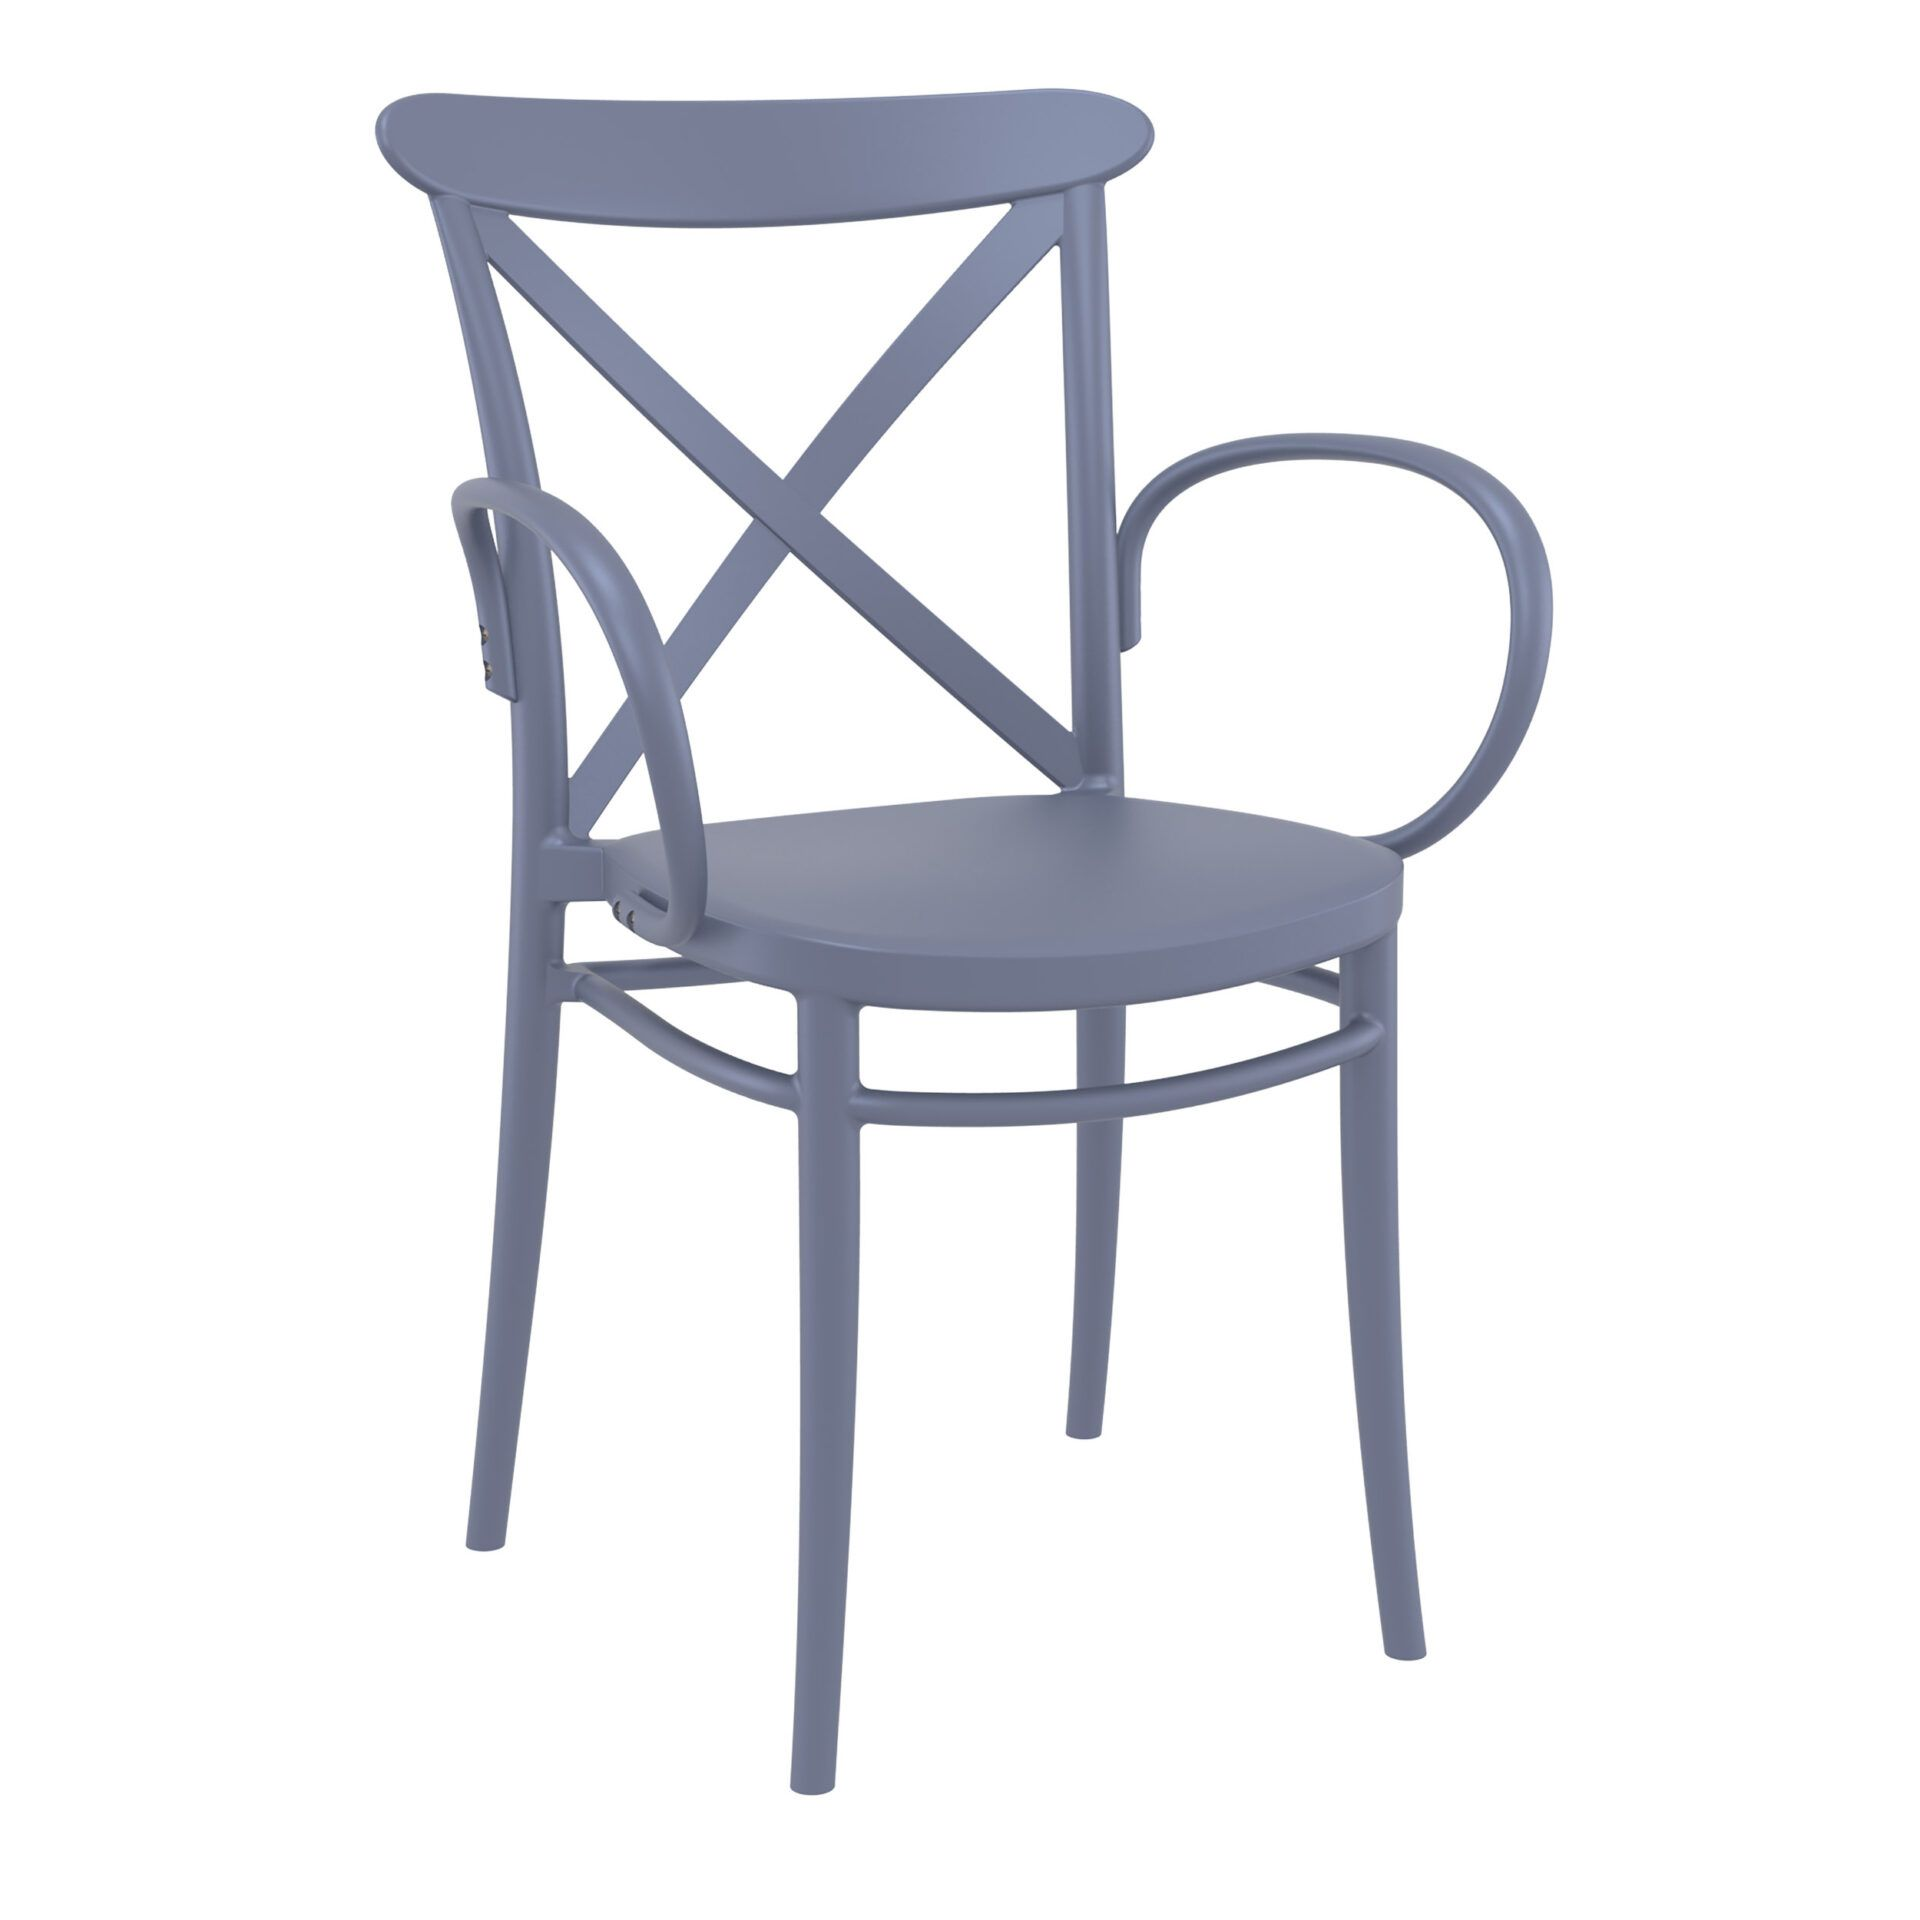 cafe polypropylene cross armchair darkgrey front side